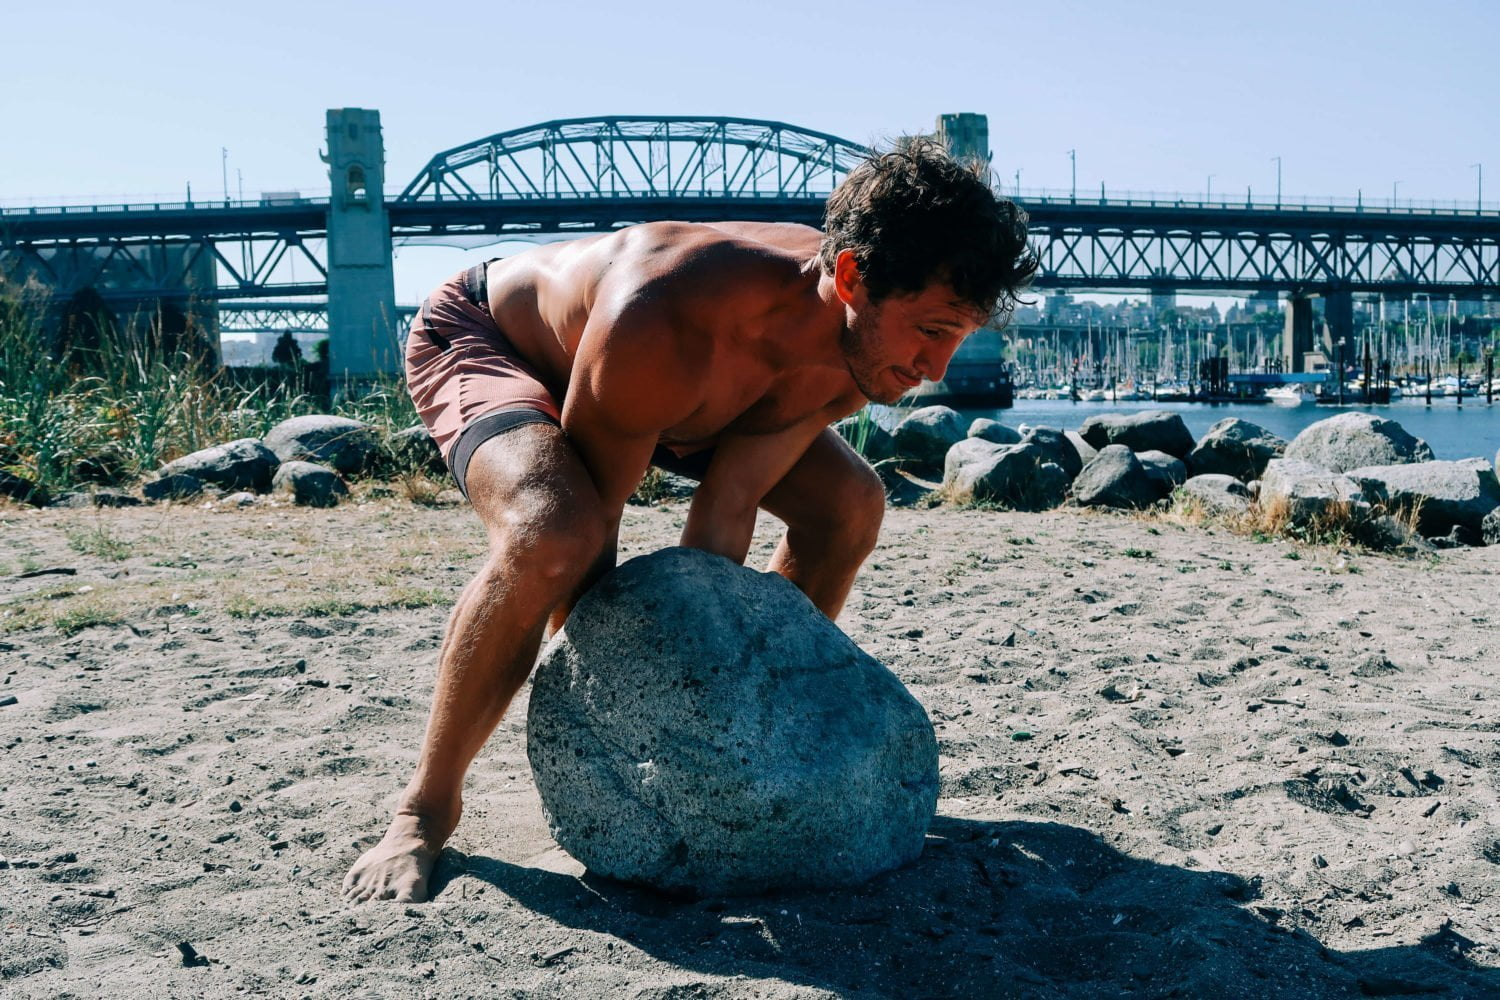 Chris rolling boulder at Sunset Beach in Vancouver.